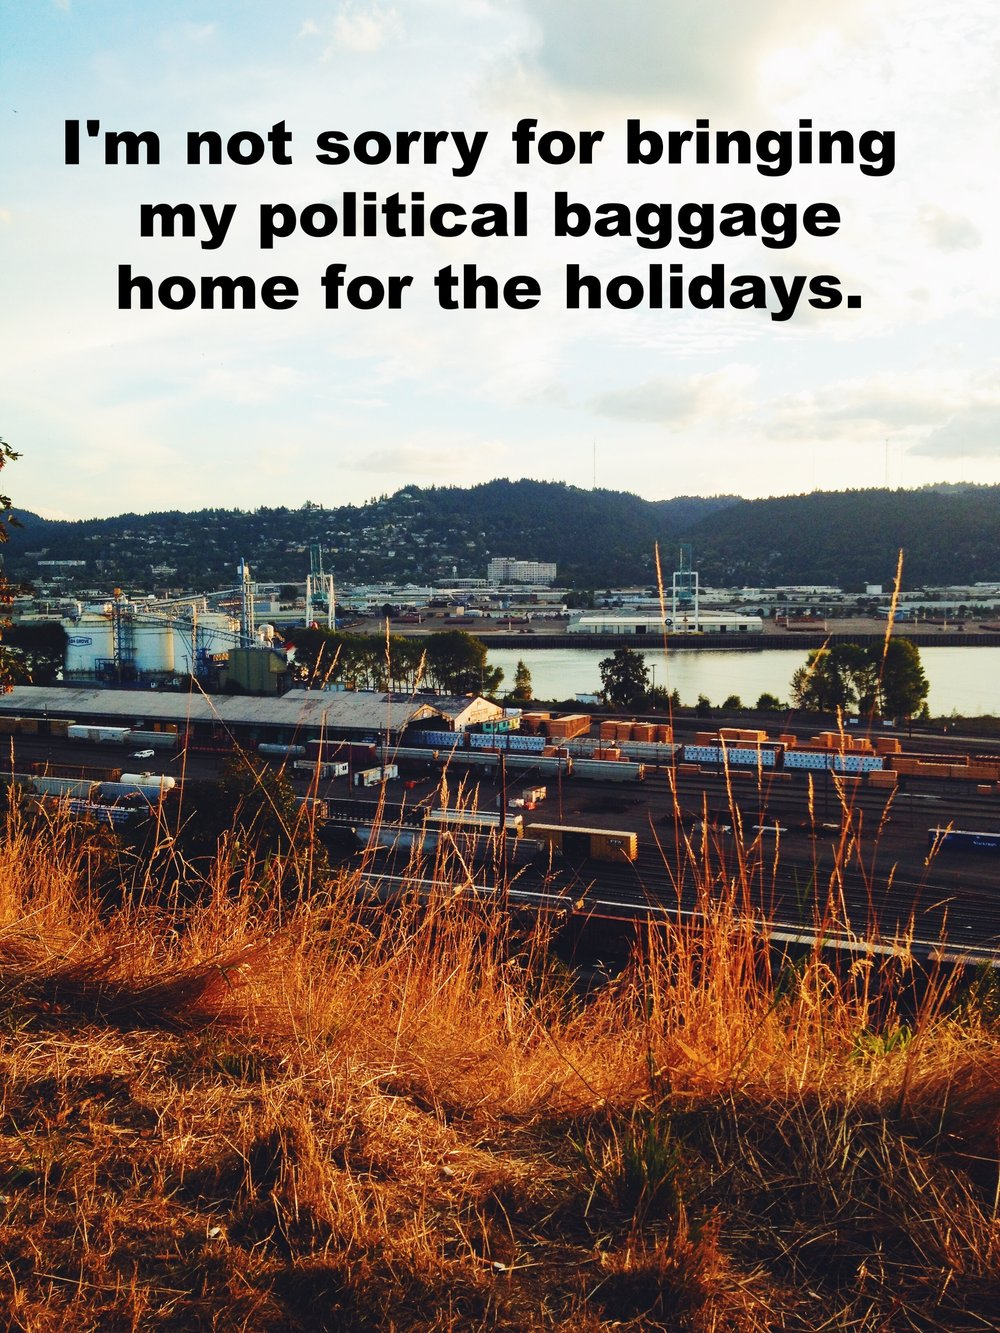 "Anonymous December 22 2016 Image taken from a dry, grassy area looking over a train yard and industrial area. ""I'm not sorry for bringing my political baggage home for the holidays"" is overlaid."